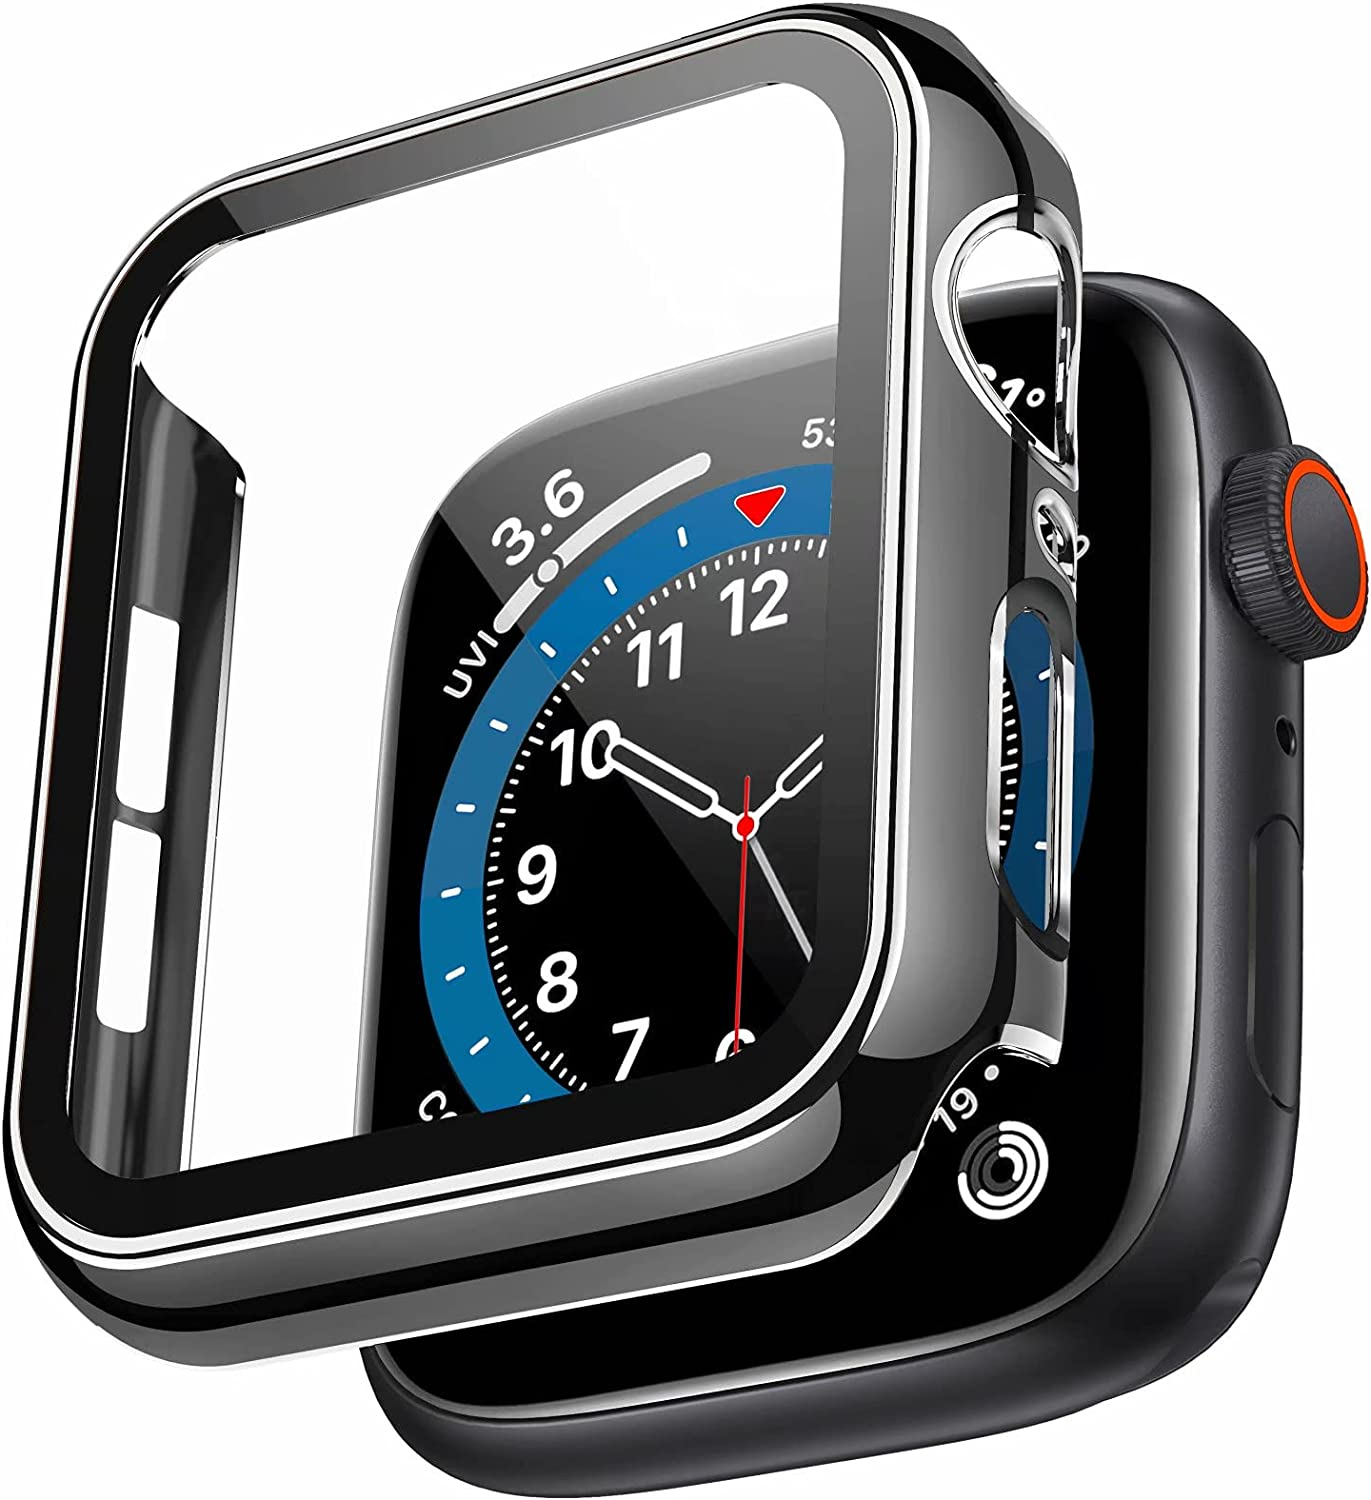 Swhatty Case Compatible with Apple Watch 44mm 40mm 42mm 38mm, Bumper Built in Tempered Glass Screen Protector, Protective Cover for iWatch Series SE 6 5 4 3 2 1 Women Men (Silver Edge Black, 44mm)